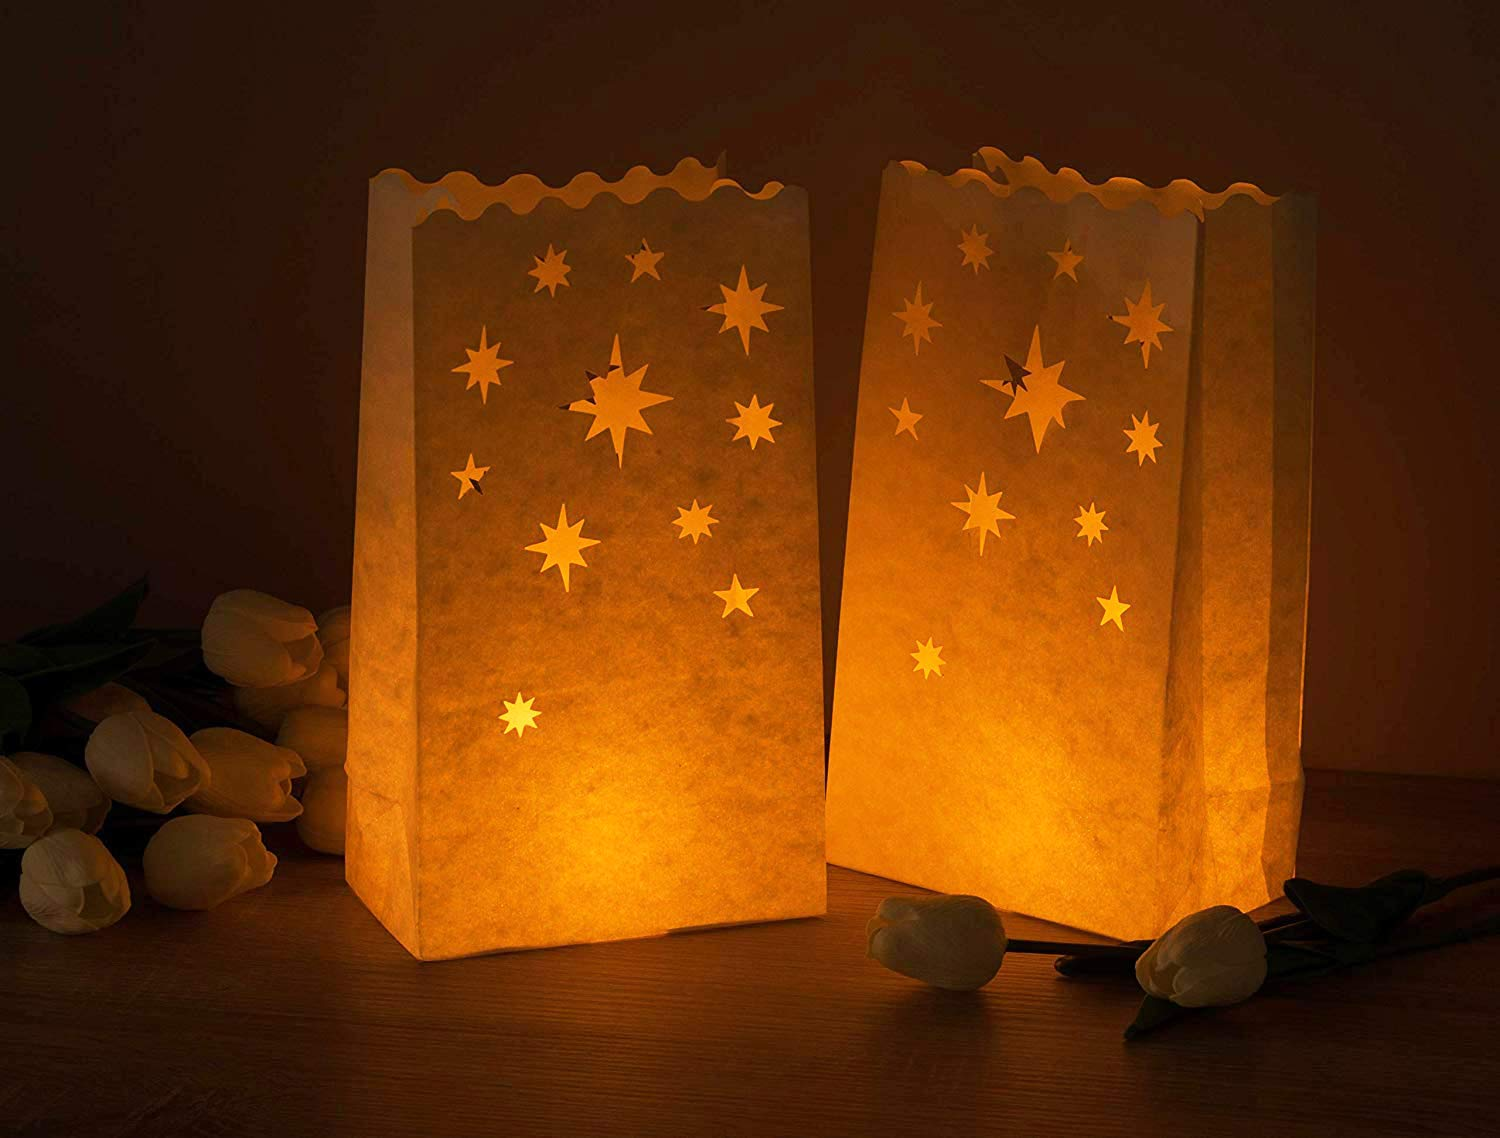 Amazon.com: Bolsas luminarias de papel blanco – Pack de 24 ...